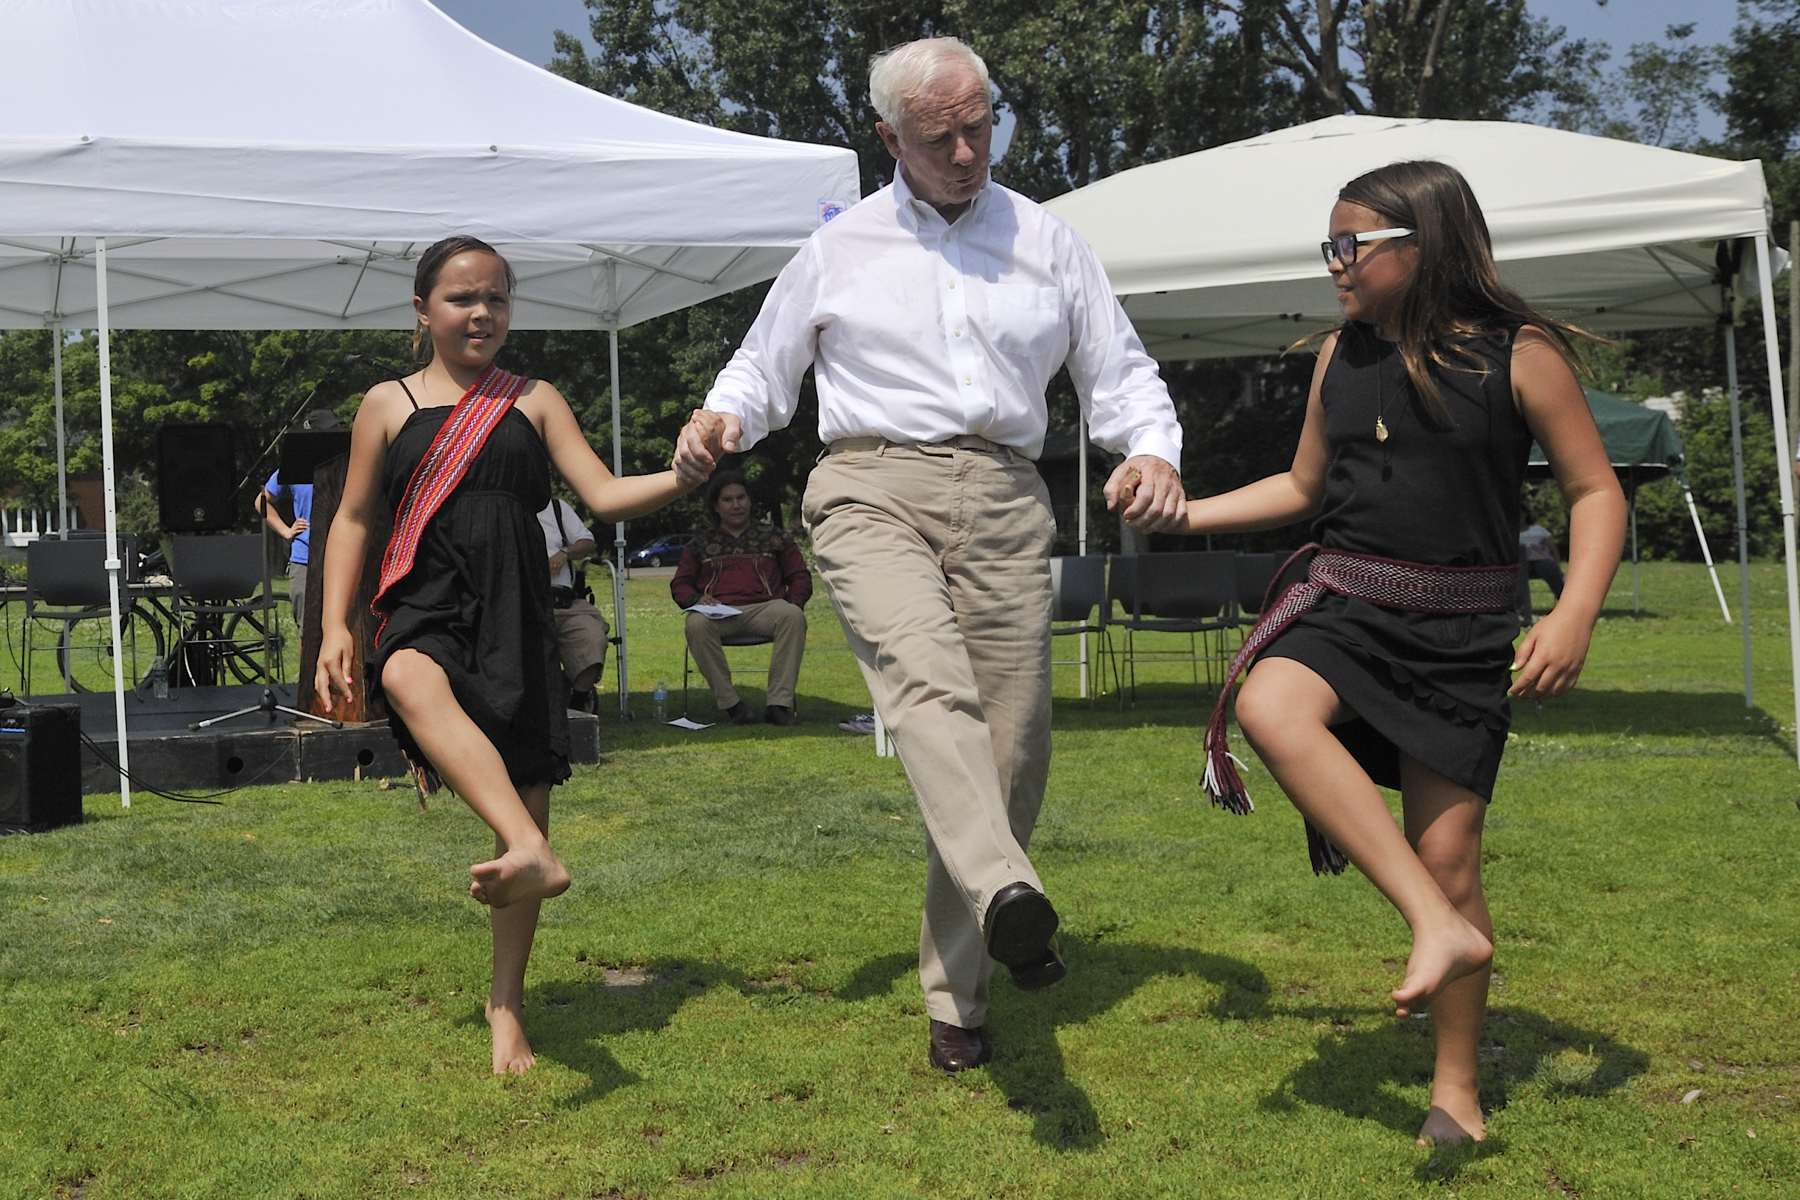 The Governor General participated in games and demonstrations. He even learned a few dance steps!